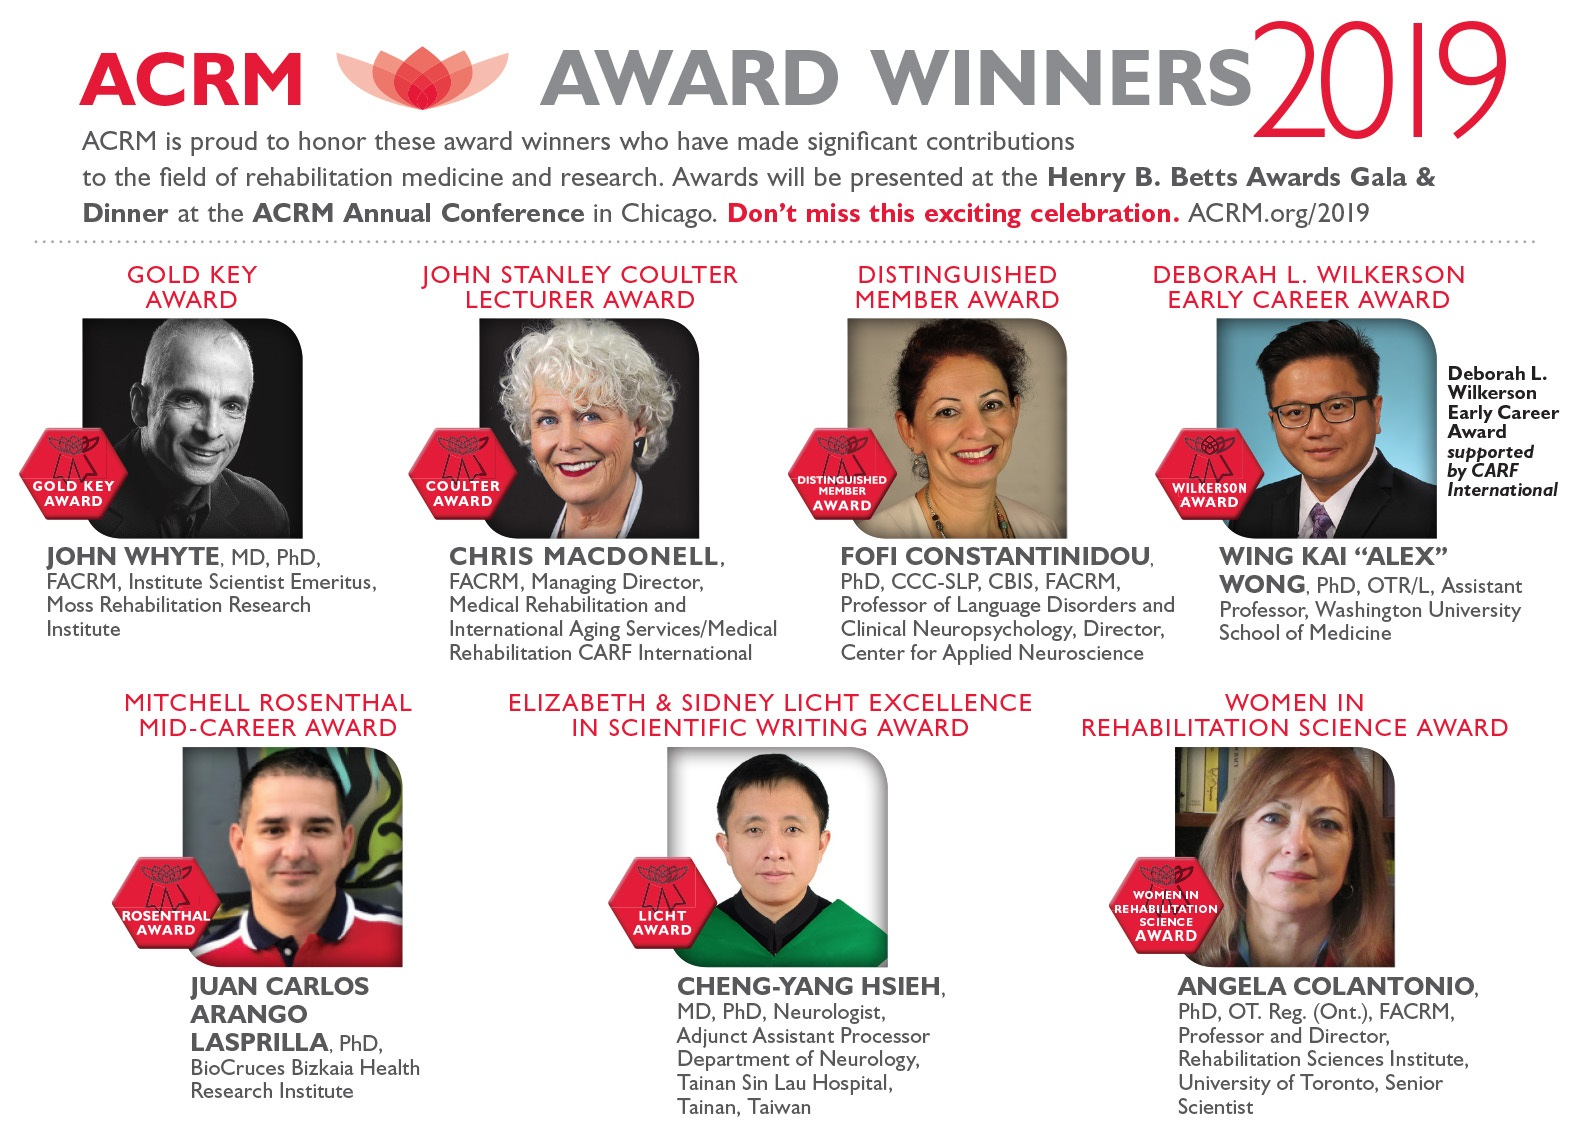 ACRM 2019 Awards Recipients image